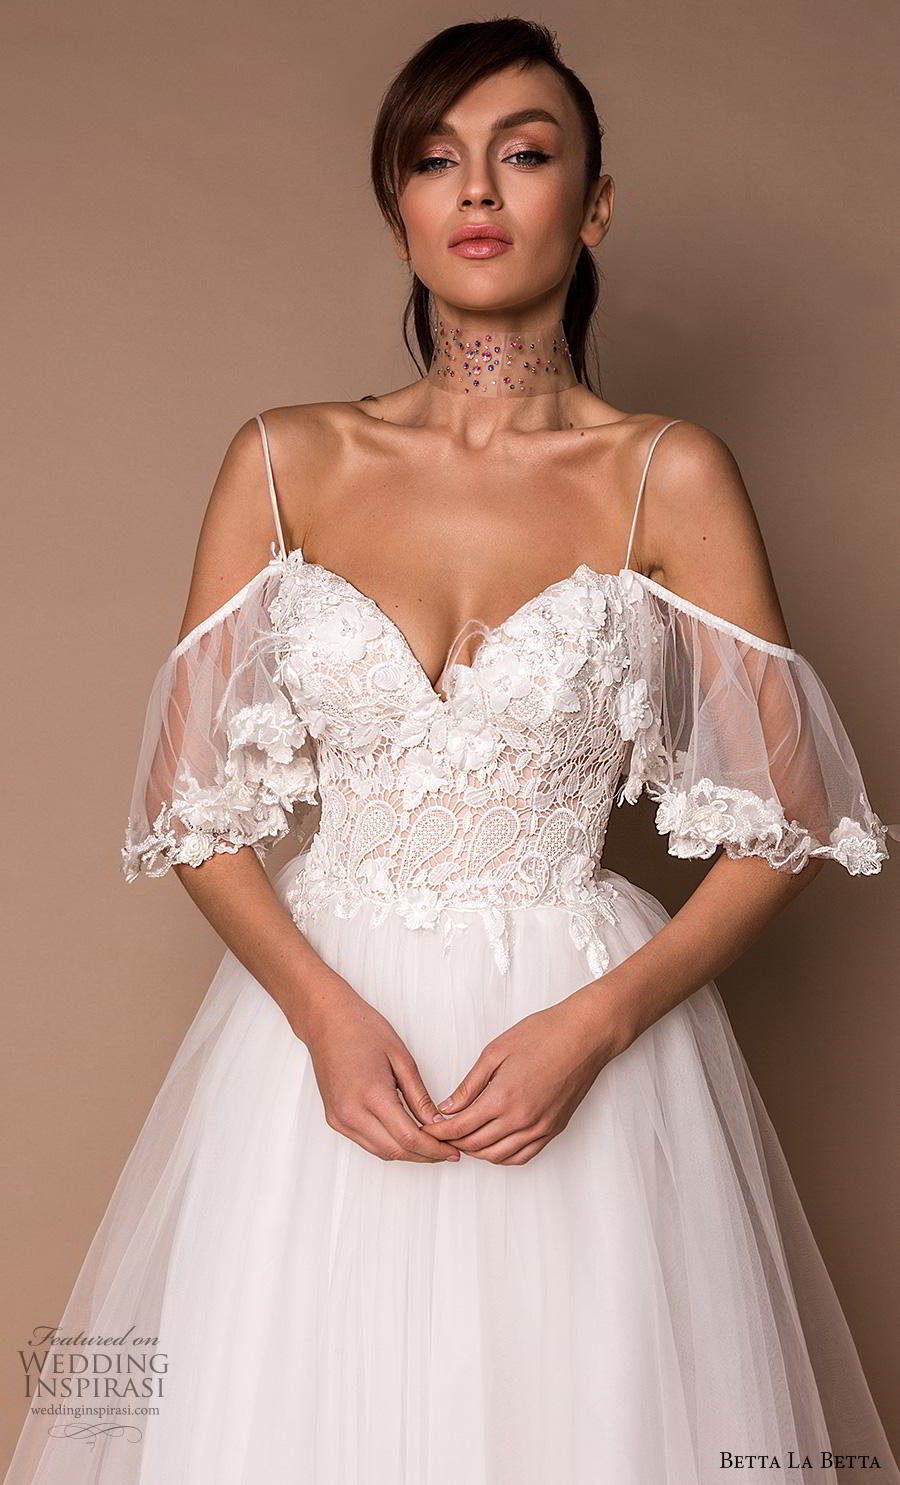 betta la betta 2020 bridal spaghetti strap cold shoulder sweetheart neckline heavily embellished bodice tulle skirt romantic a  line wedding dress backless chapel train (7) zv